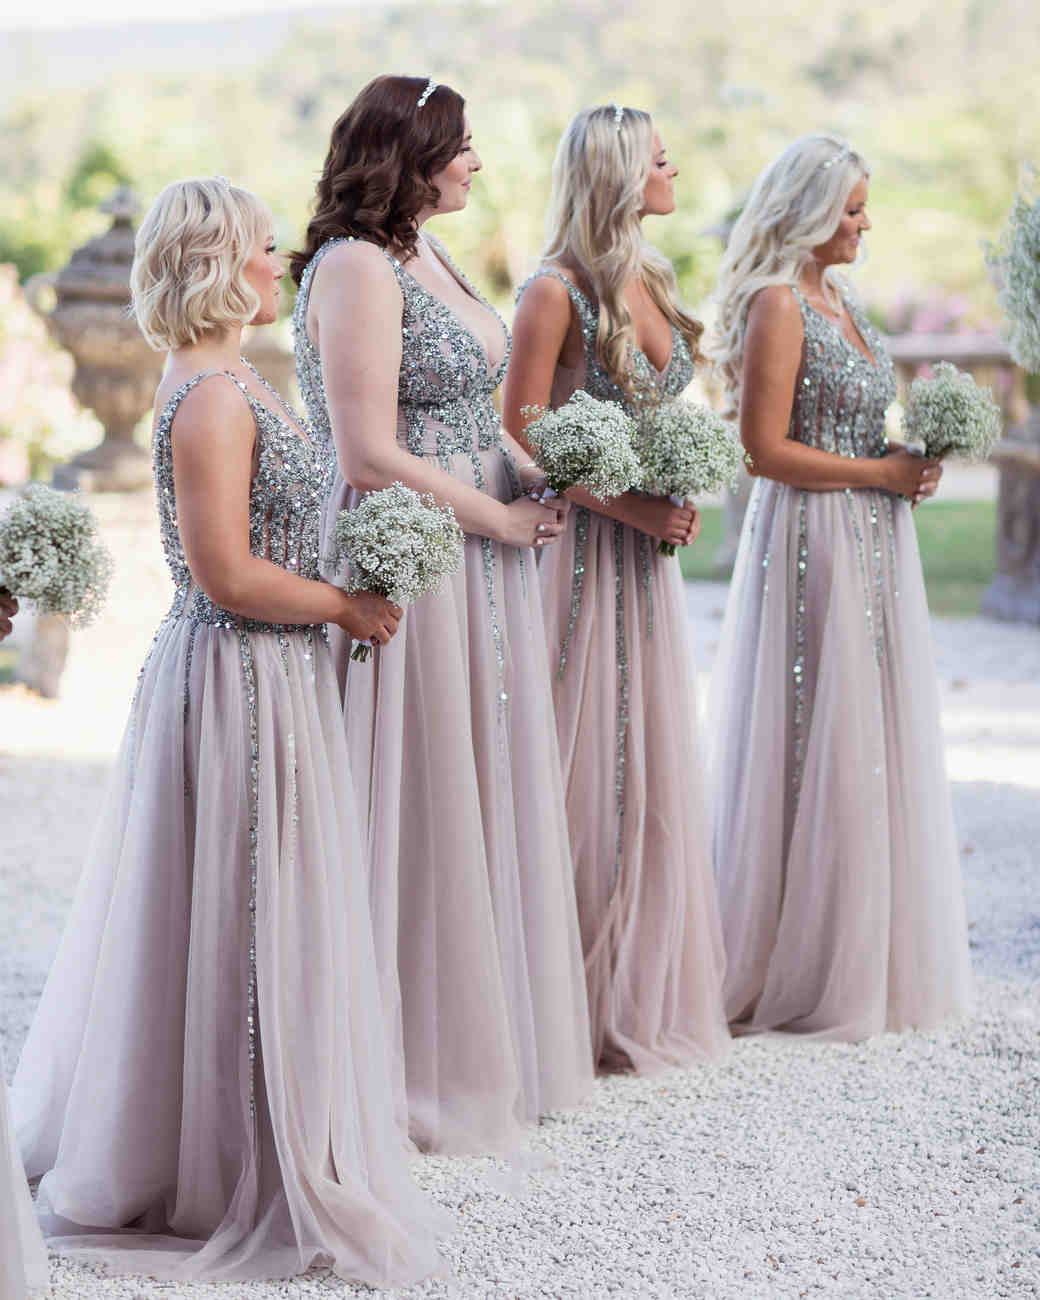 22 Sparkling Wedding Ideas That'll Give Your Day A